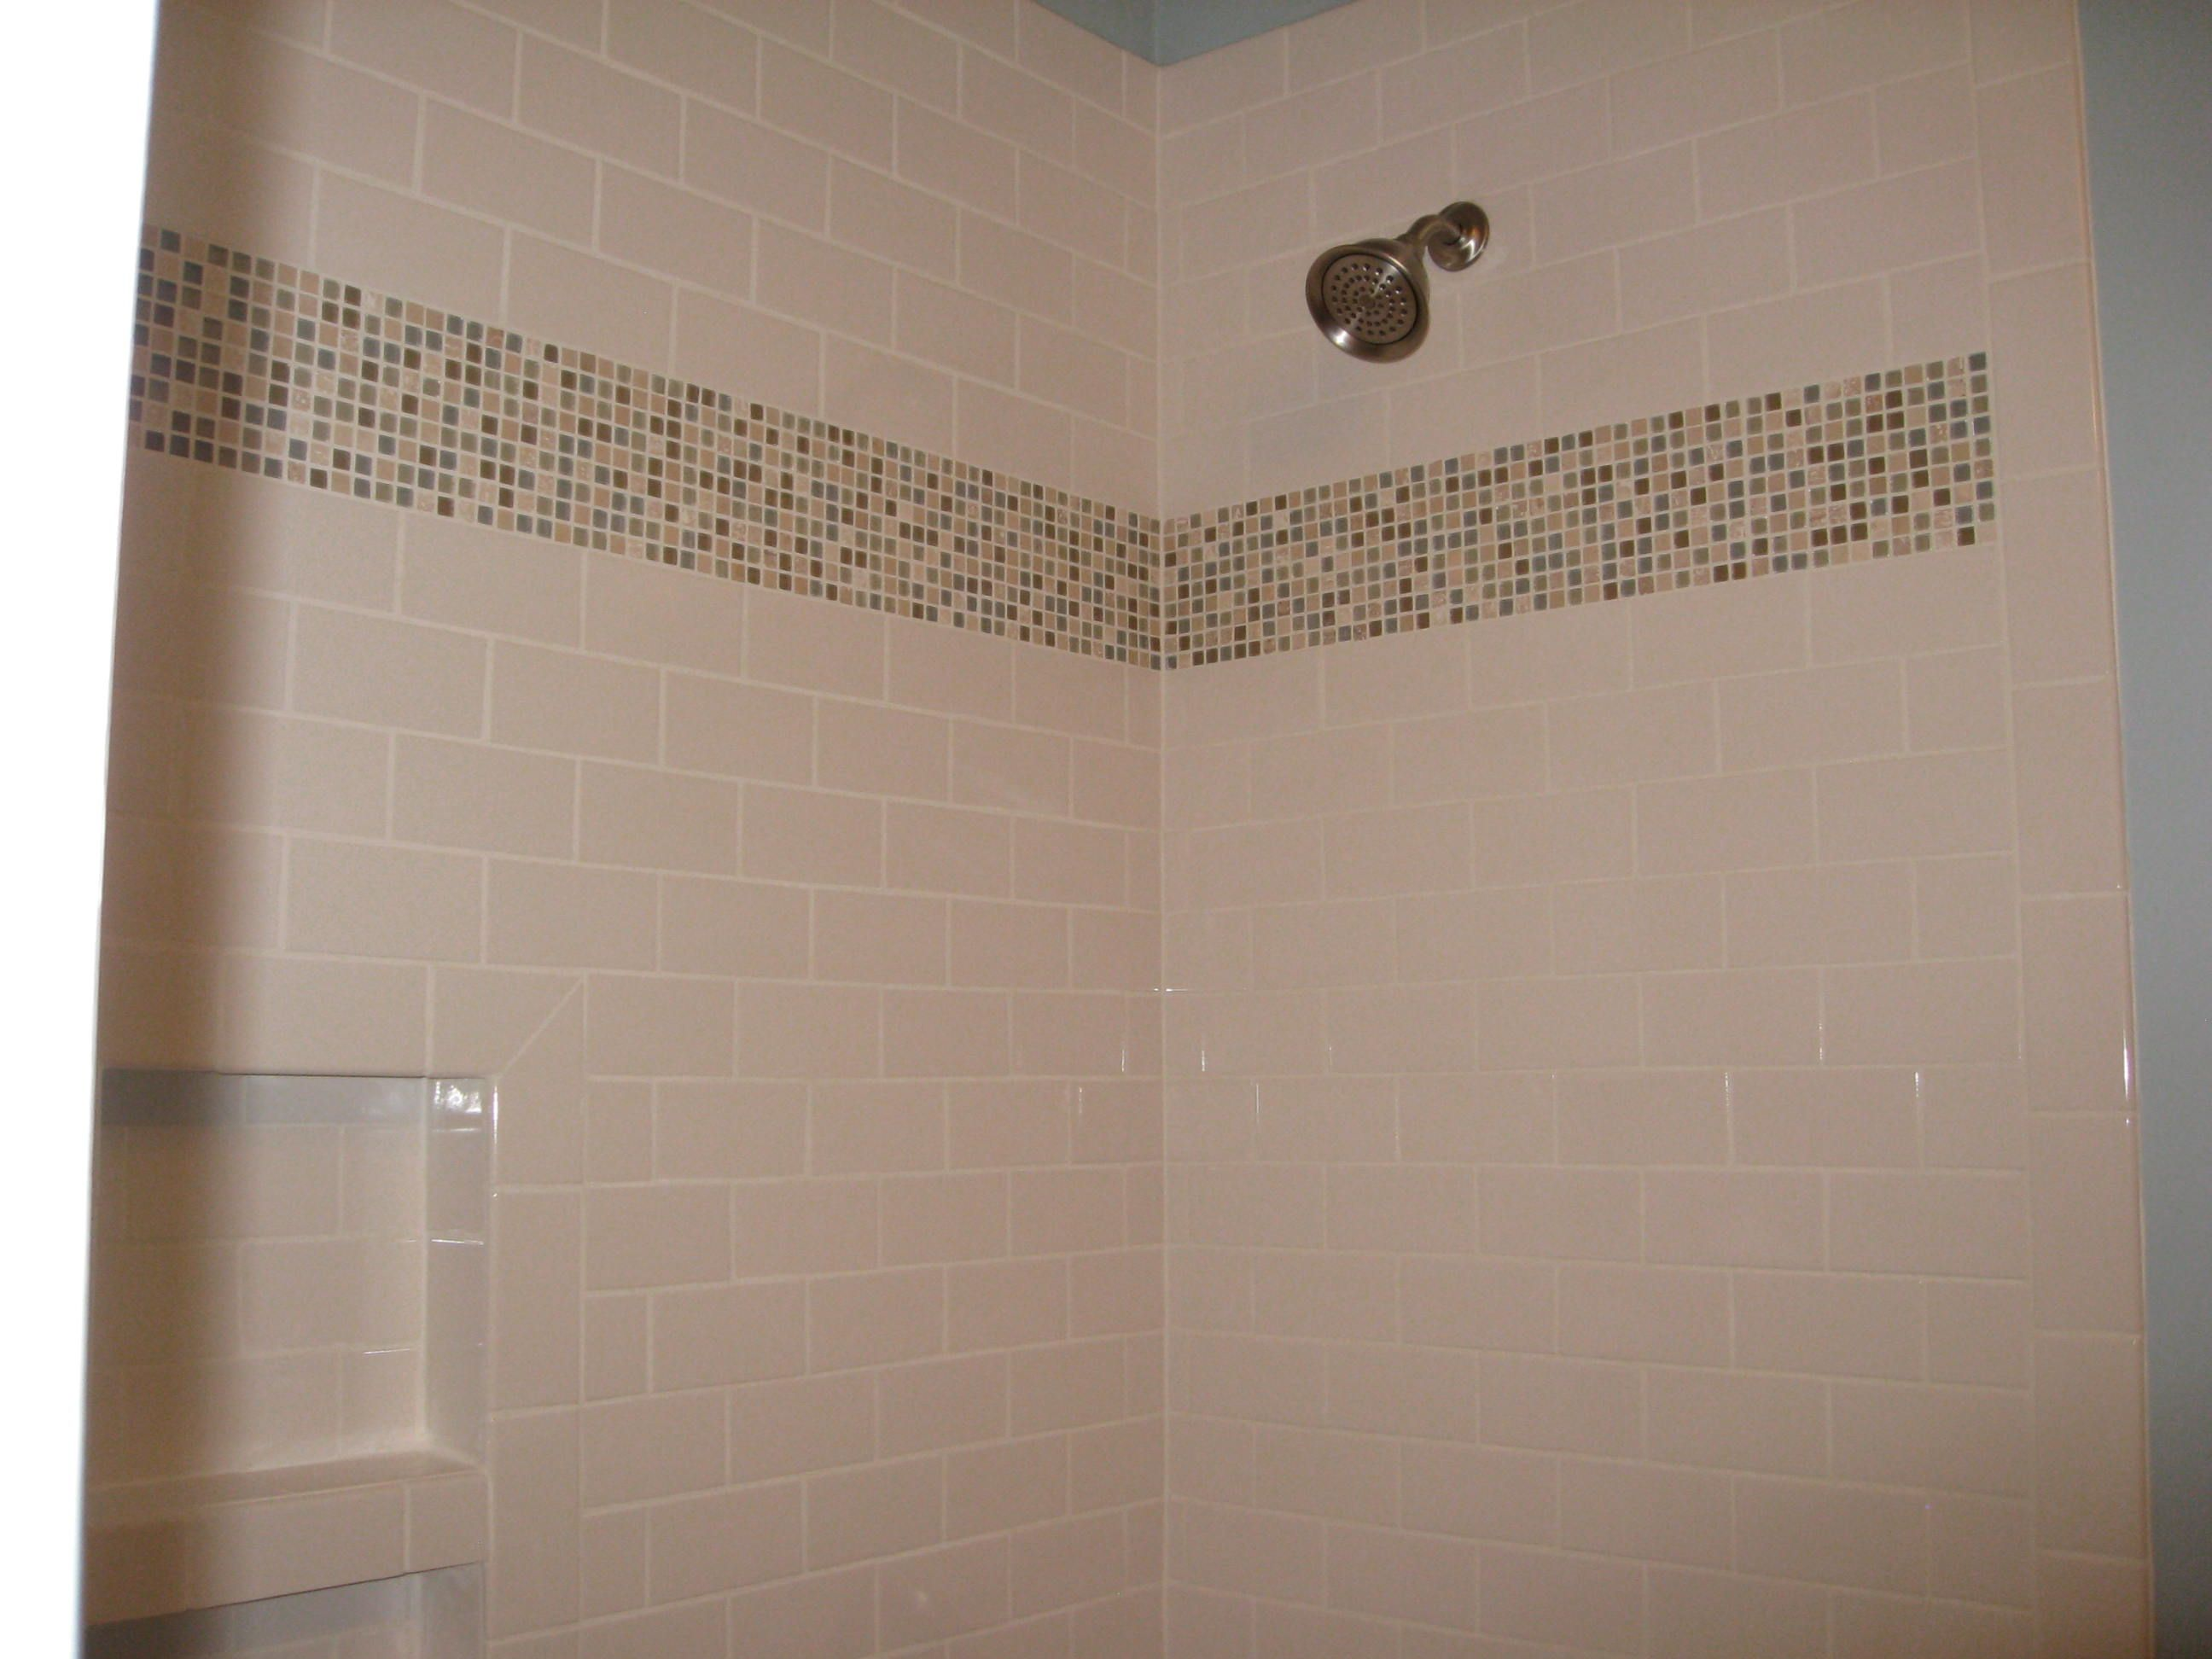 Mosaic Placement For 'blue' Bathroom. 4x4 White Tiles